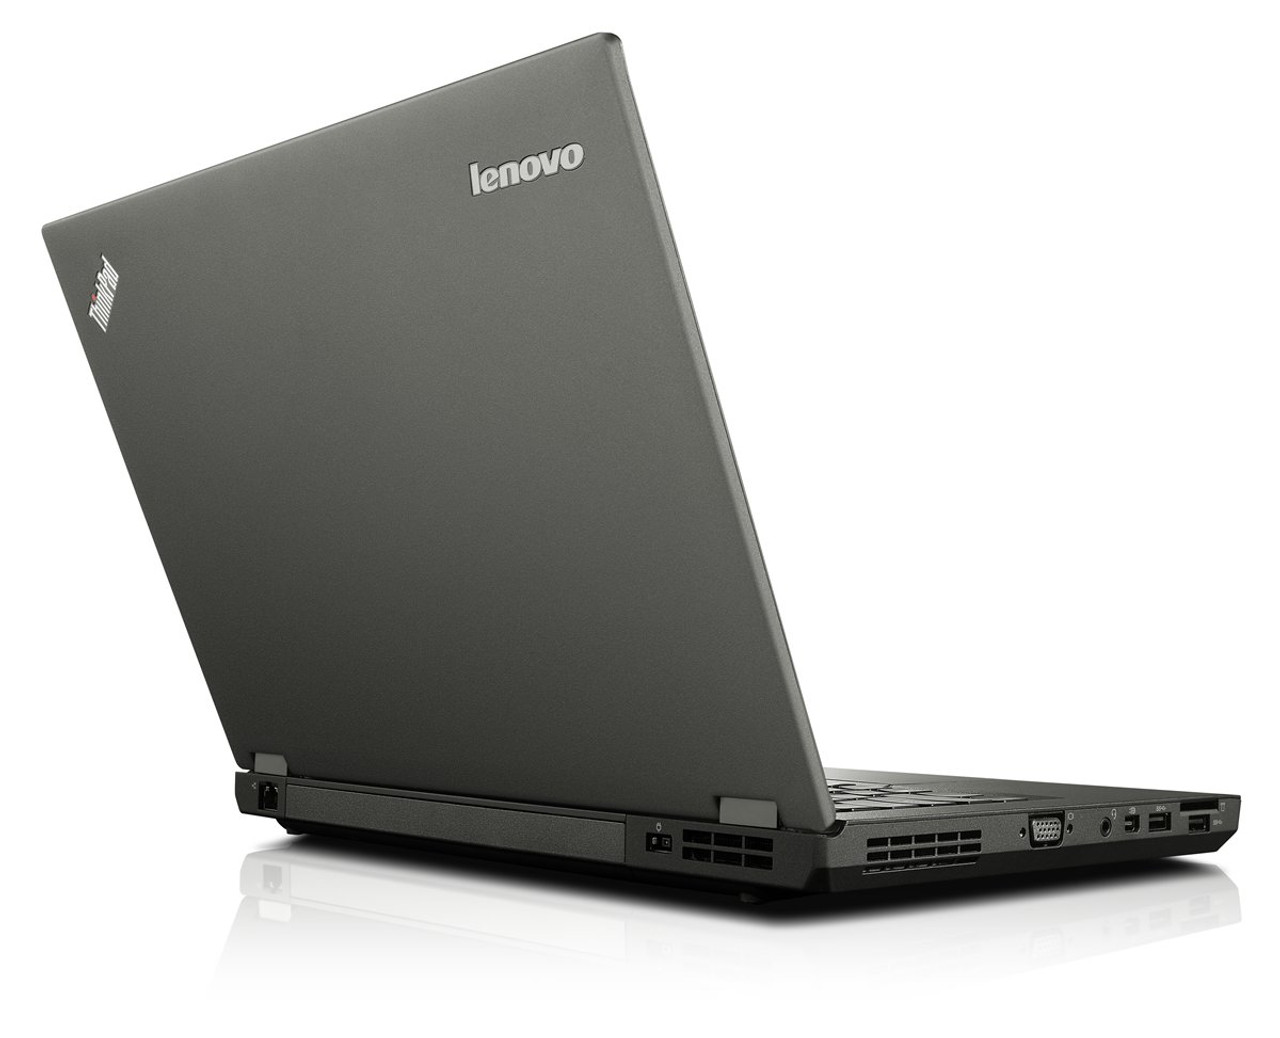 IBM Lenovo Thinkpad T440p Laptop Core i5 2.5GHz, 8GB Ram, 250GB SSD, DVD-RW, Windows 10 Pro 64 Notebook